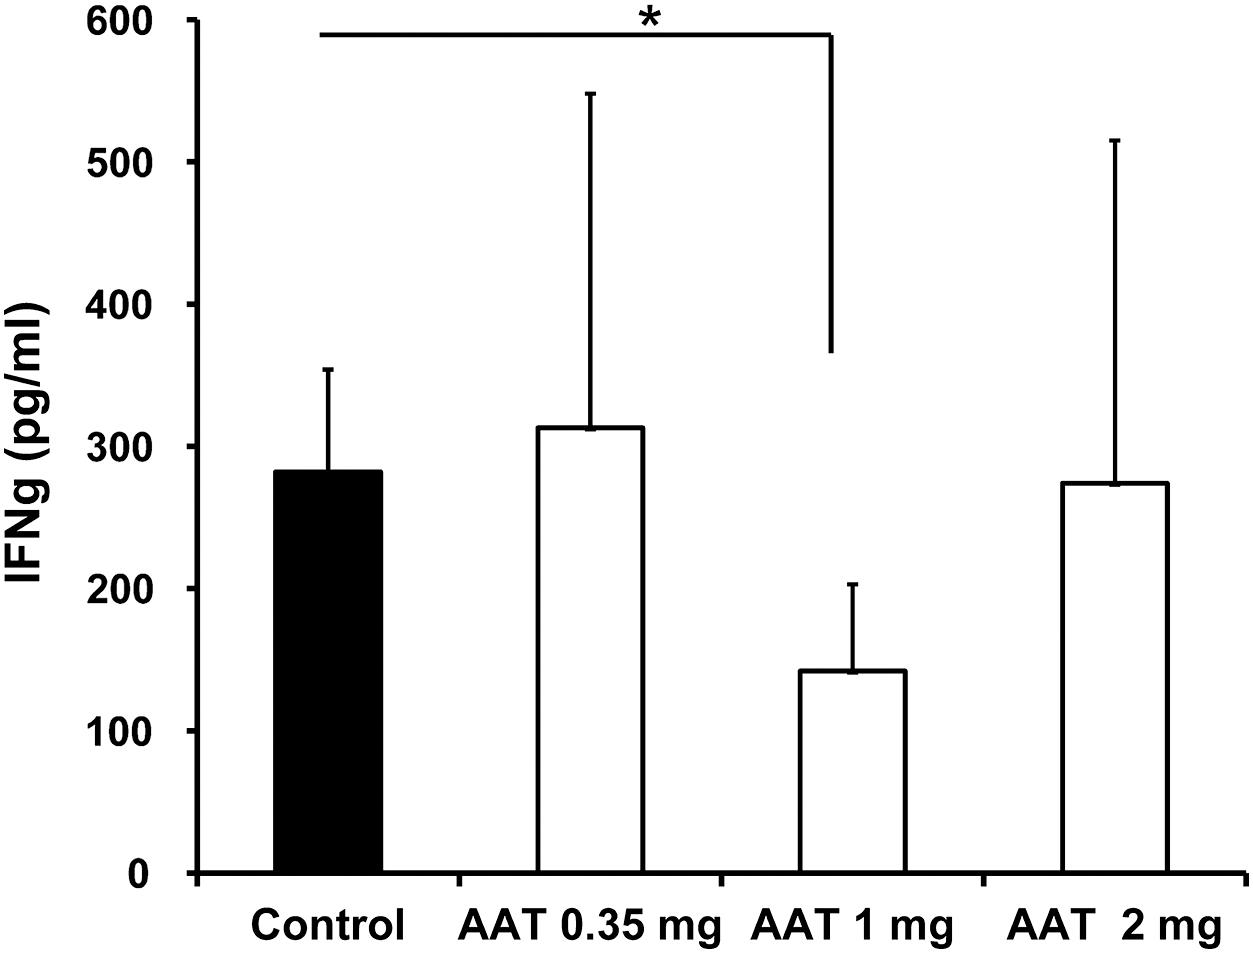 Effect of AAT on the inflammatory response in the ConA-induced hepatitis model.